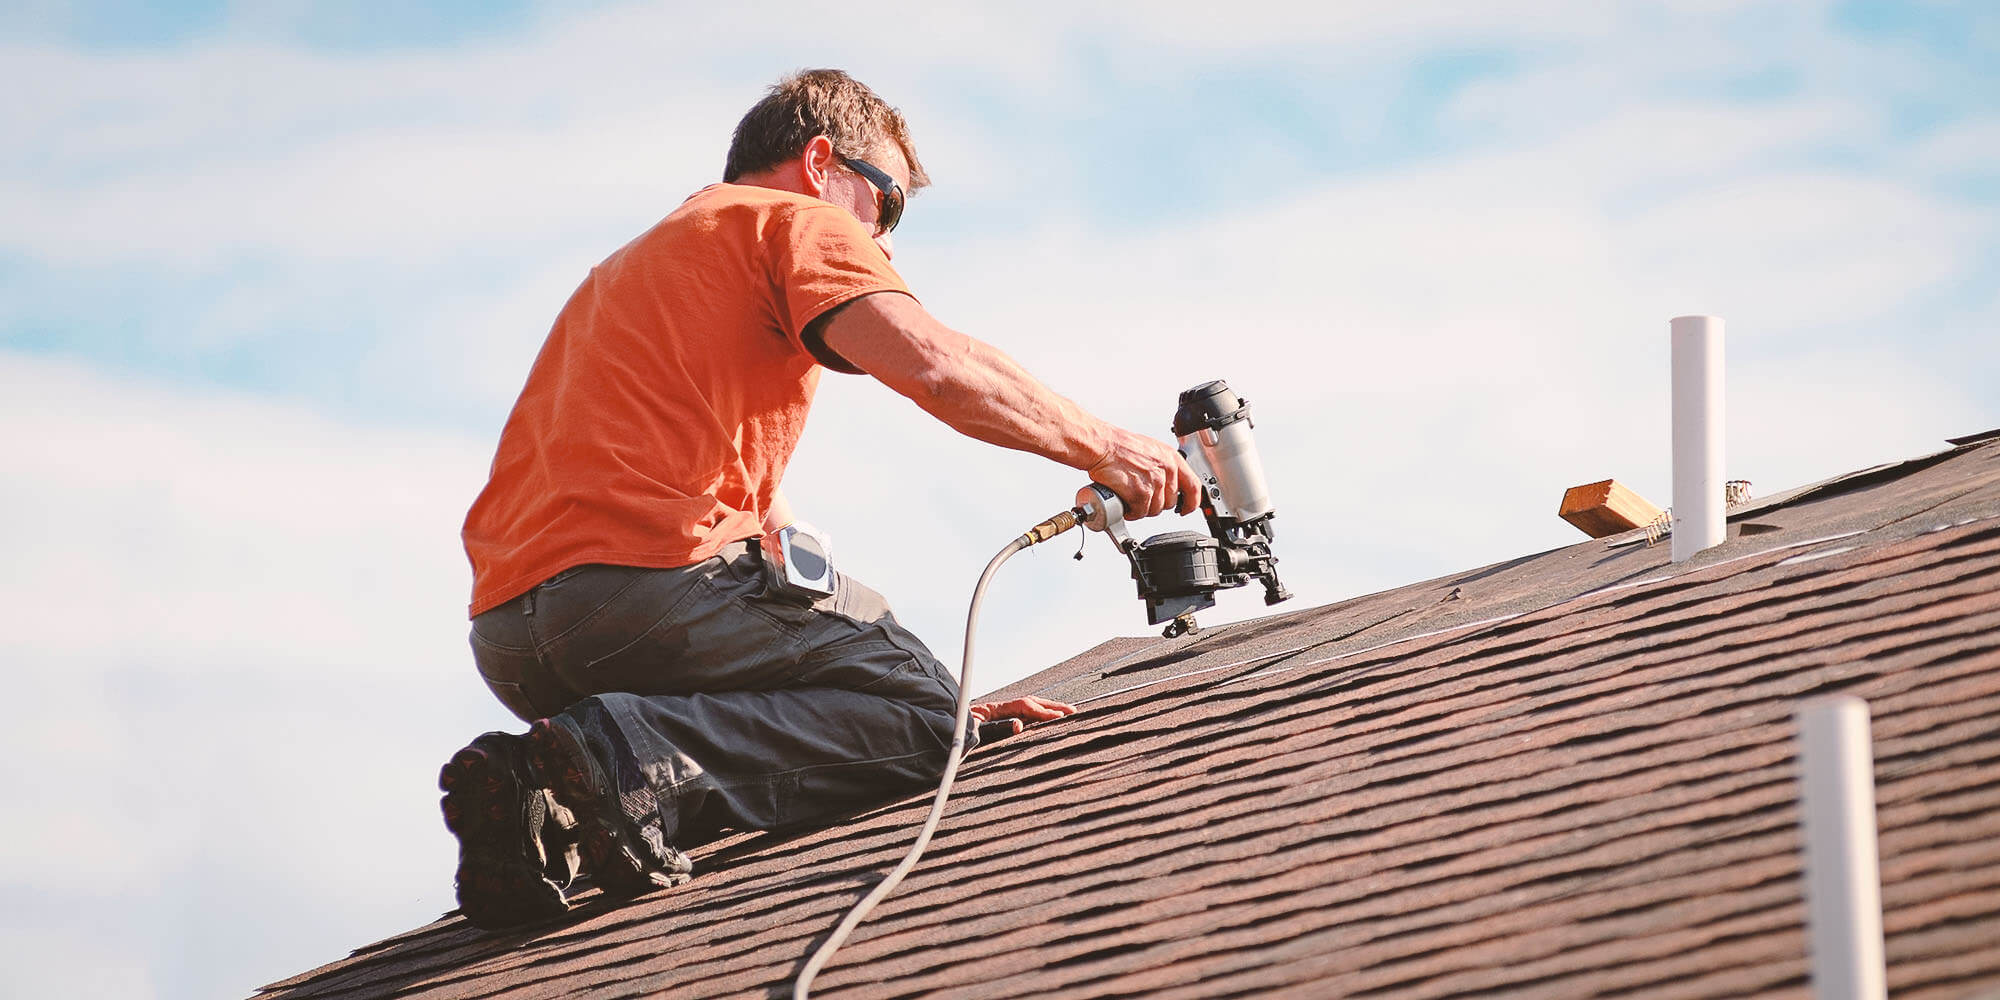 Roofing Companies OKC - Getting Commercial Roof Installation on a Budget